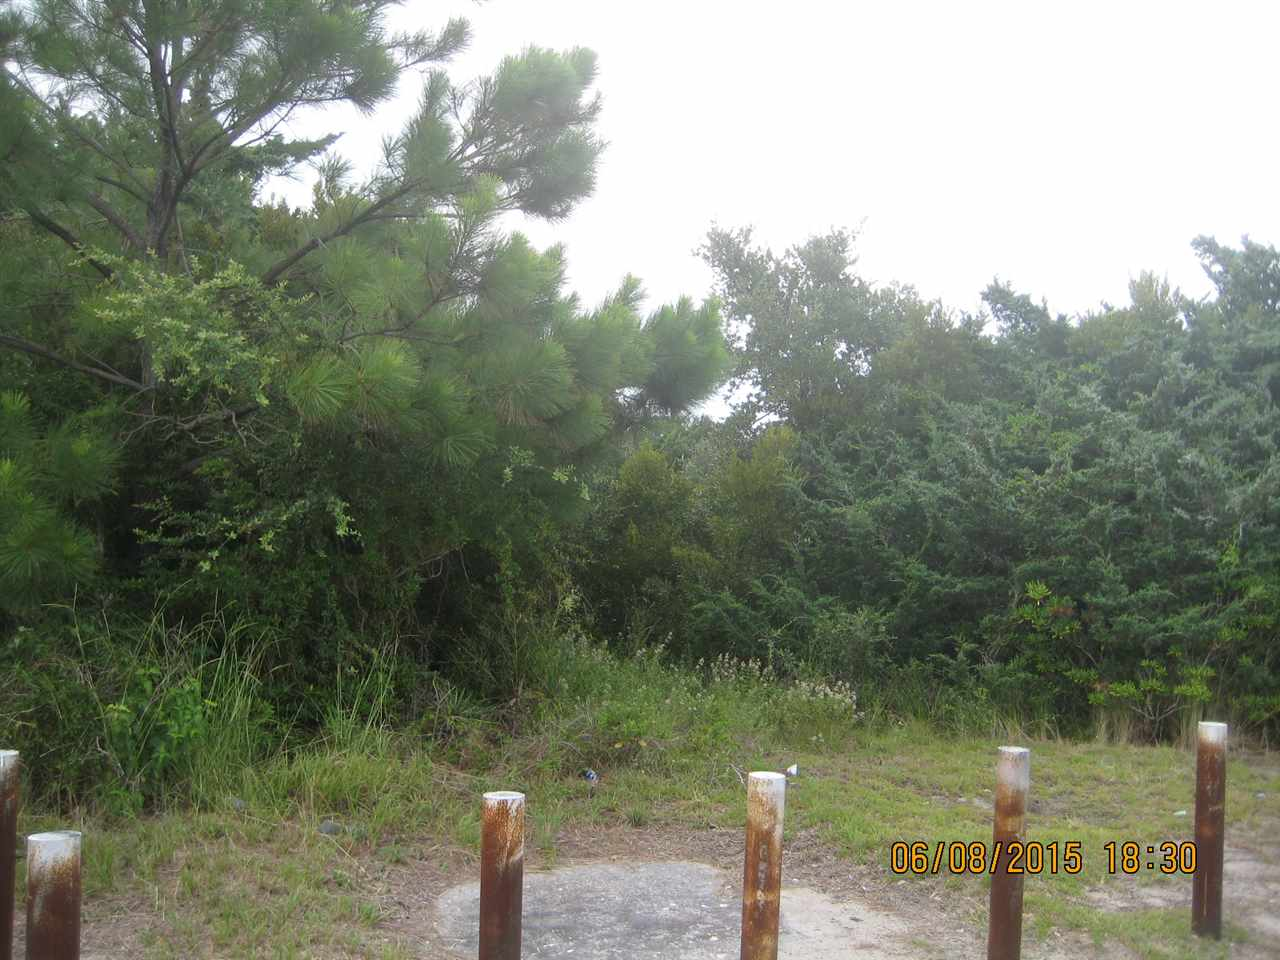 26 Lighthouse Road, Ocracoke, NC 27960, ,Lots/land,For sale,Lighthouse Road,89077